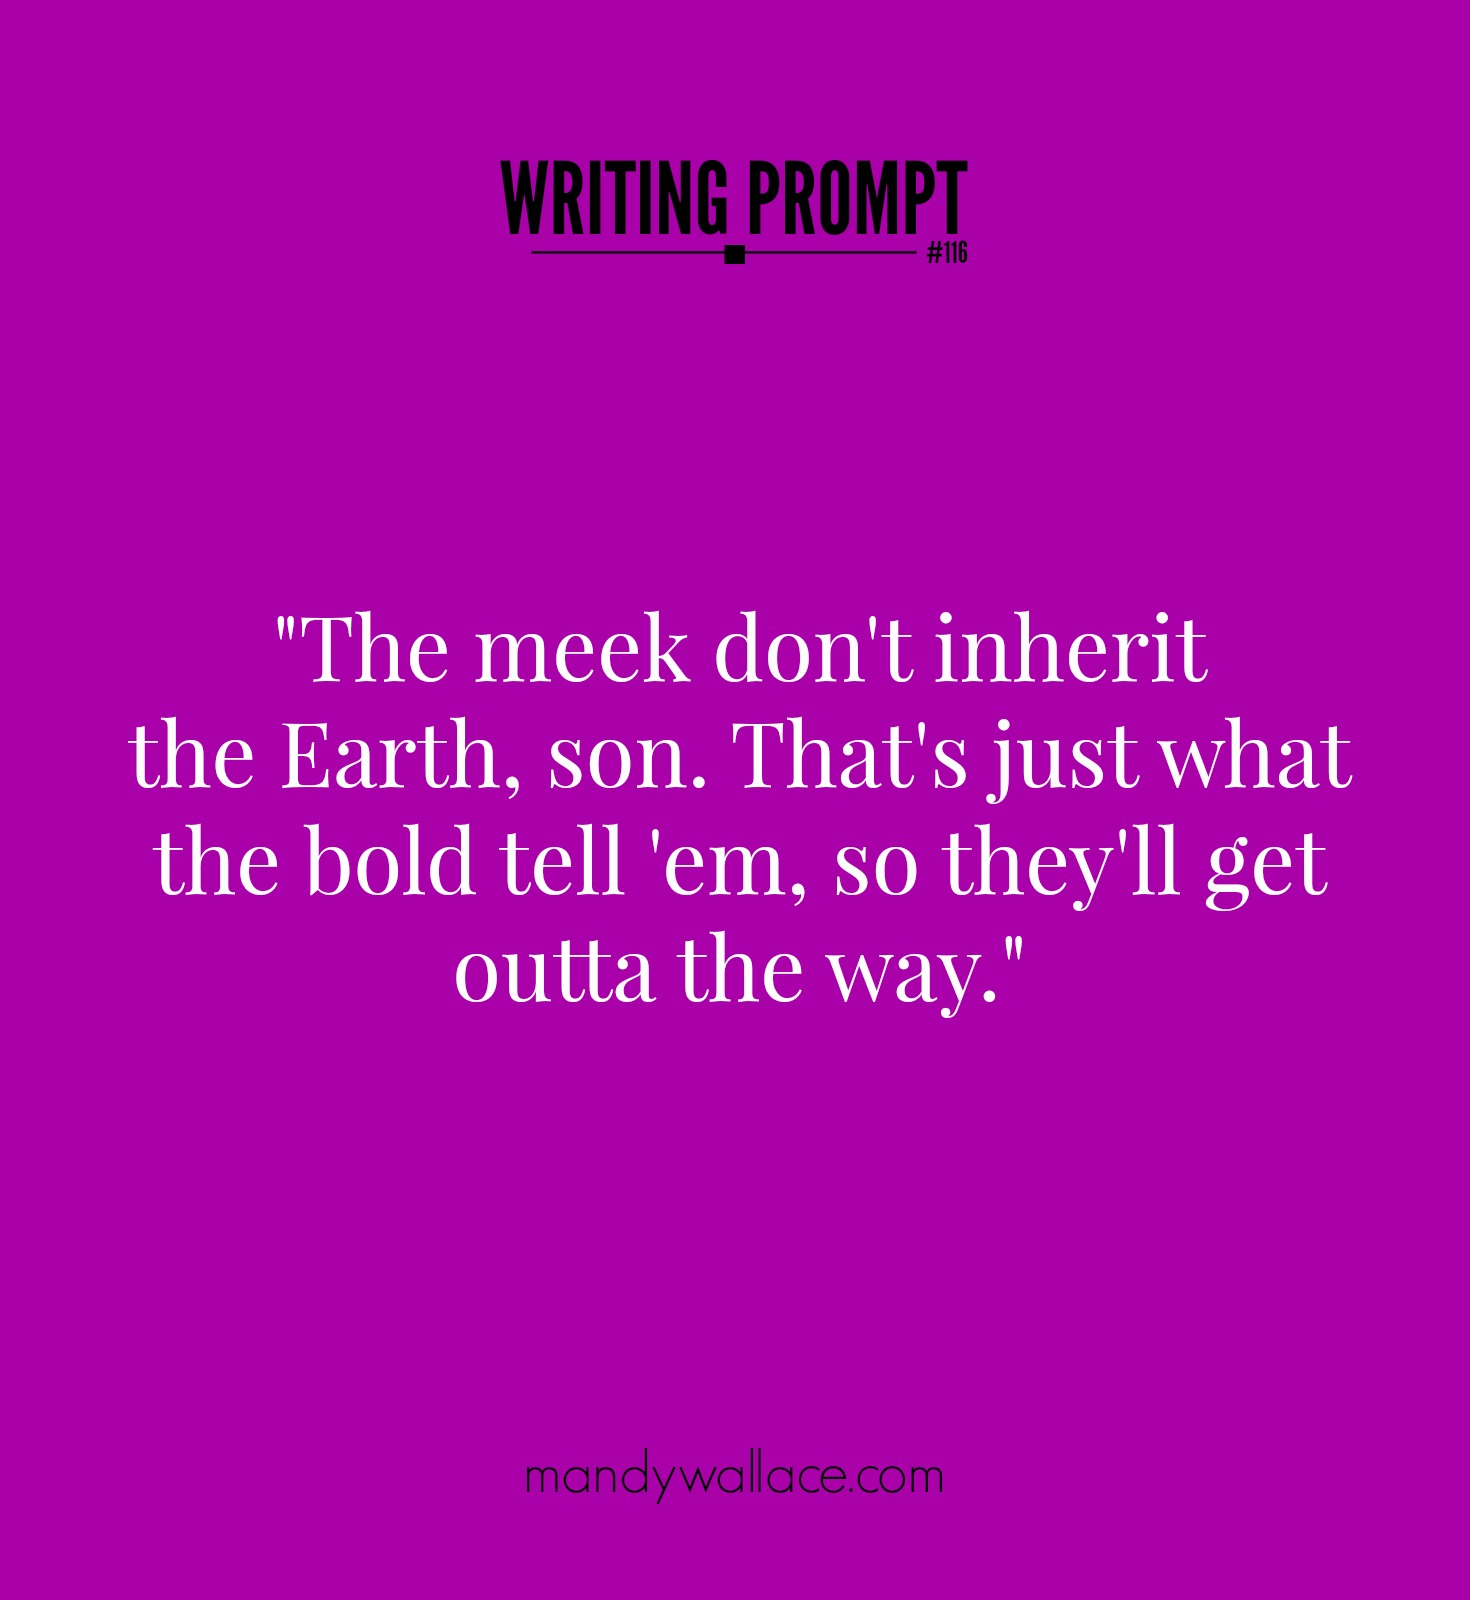 "Writing Prompt #116: ""The meek don't inherit the Earth, son. That's just what the bold tell 'em so they'll get outta the way."""